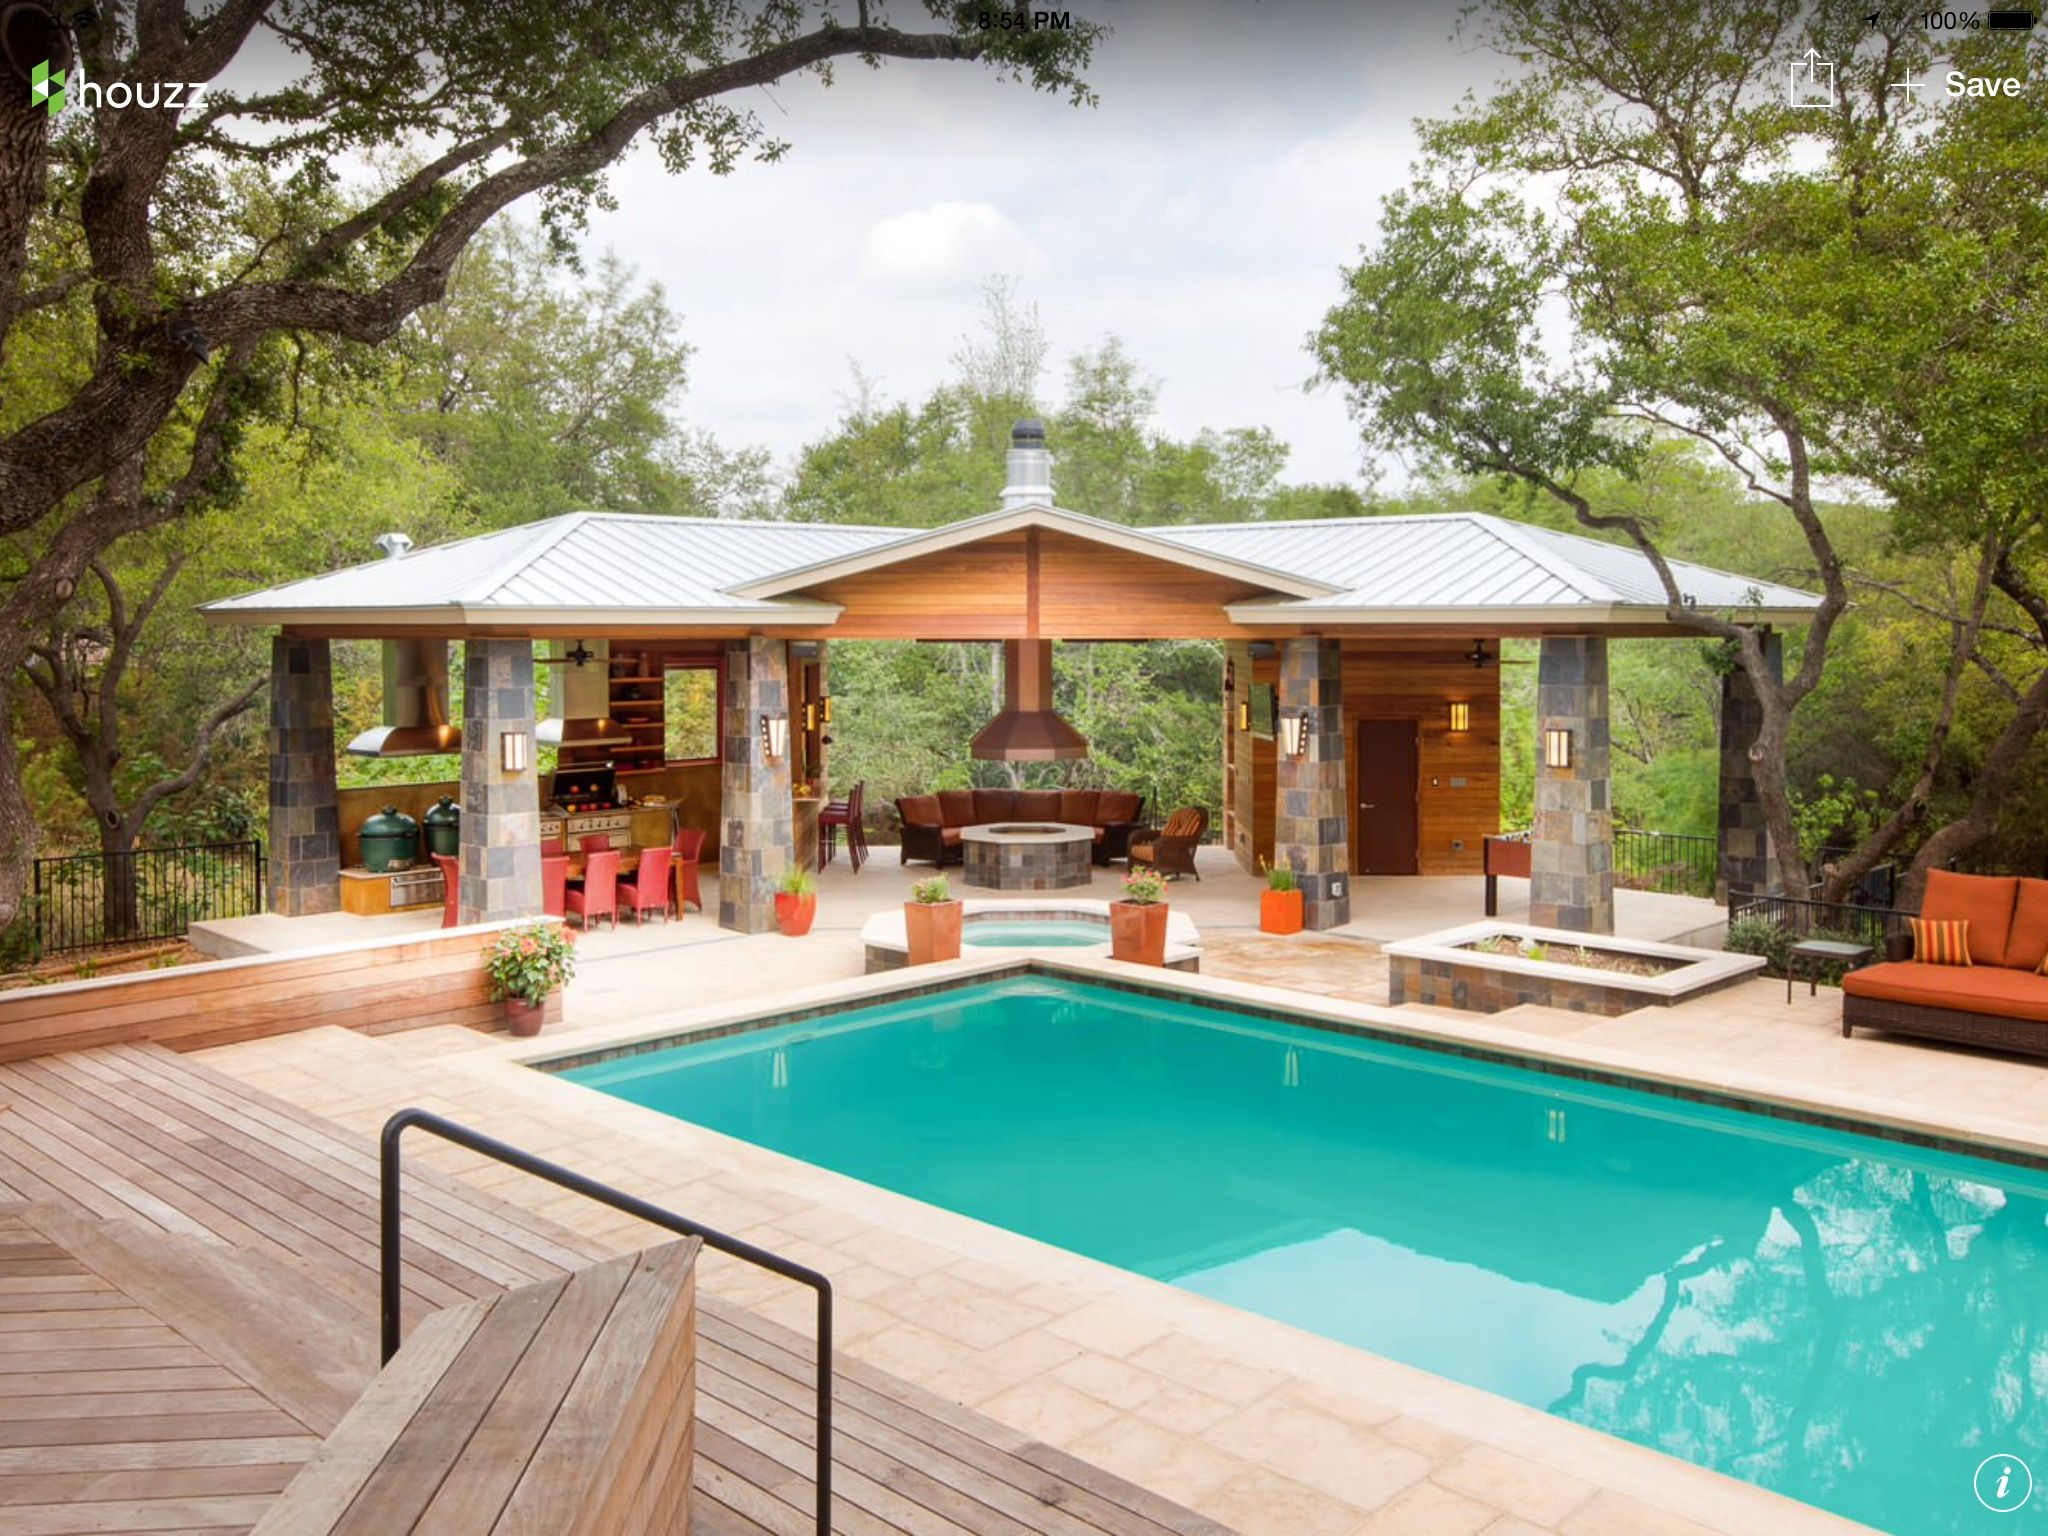 Ip Deck And Dog Run Style Covered Area Outdoor Gazebos Pool Houses Pool House Designs